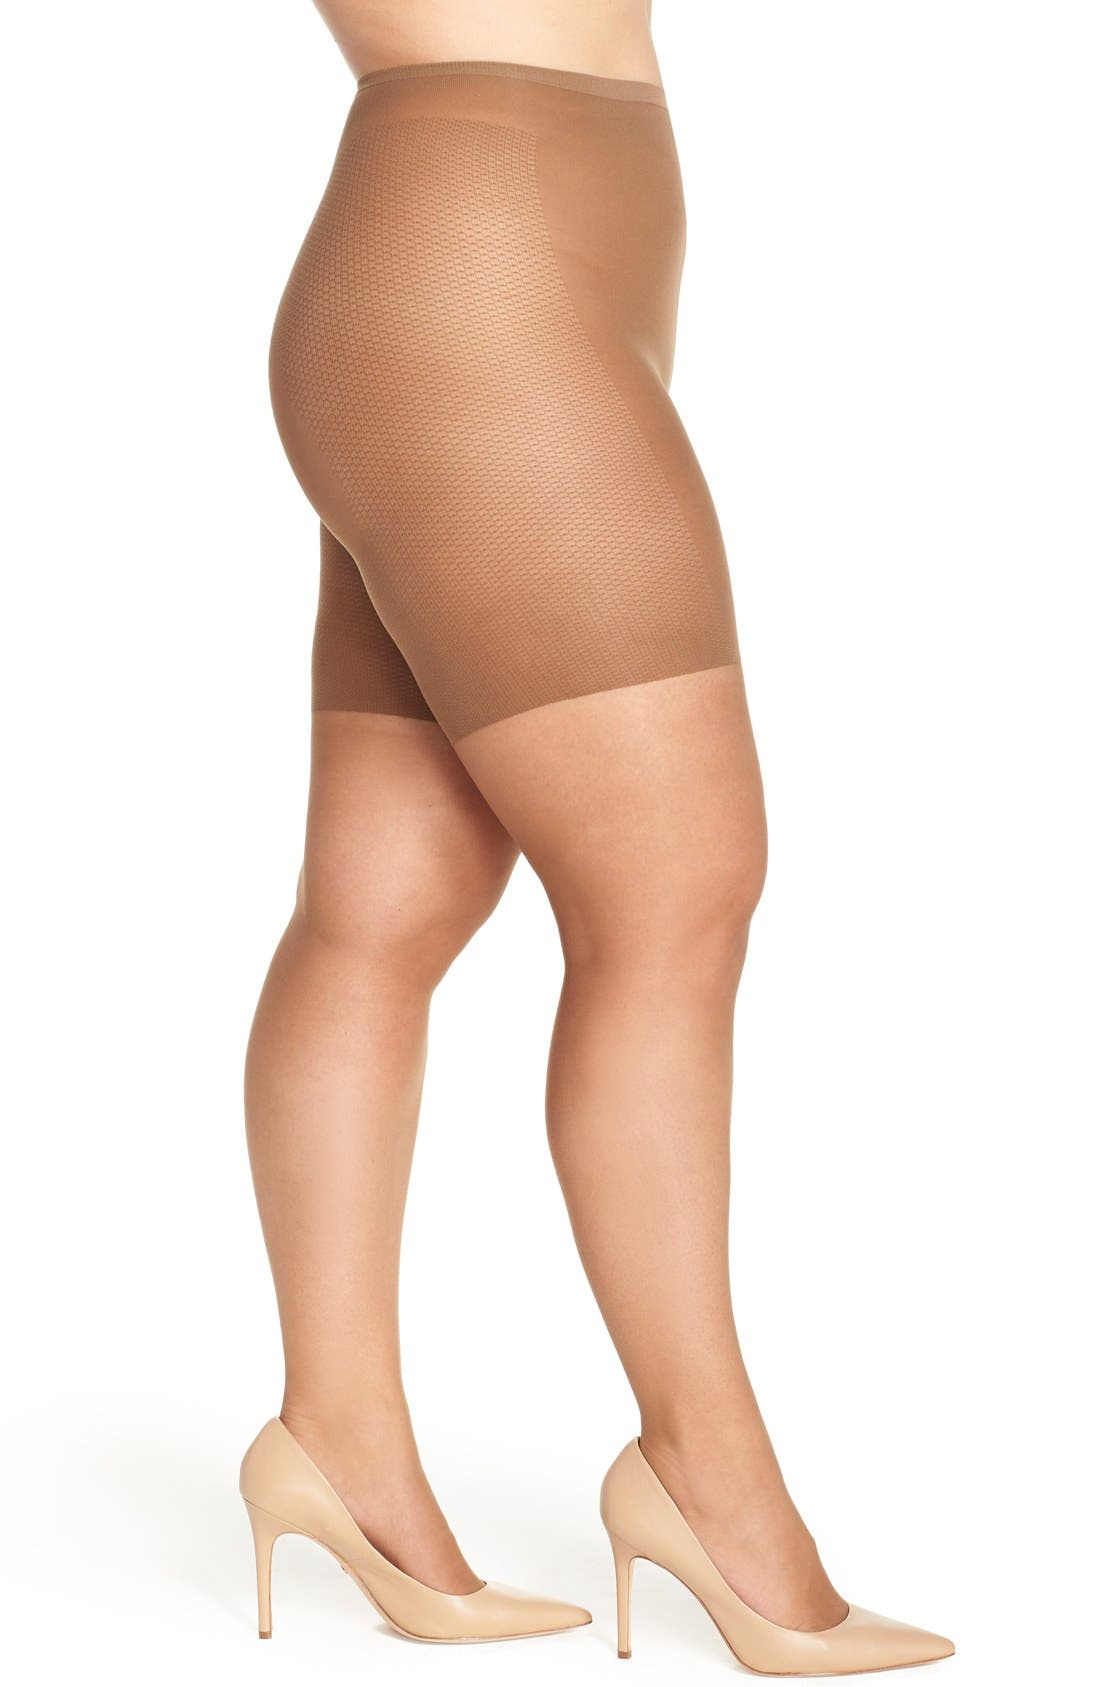 Main Image - Berkshire Light Control Top Pantyhose (Plus Size)